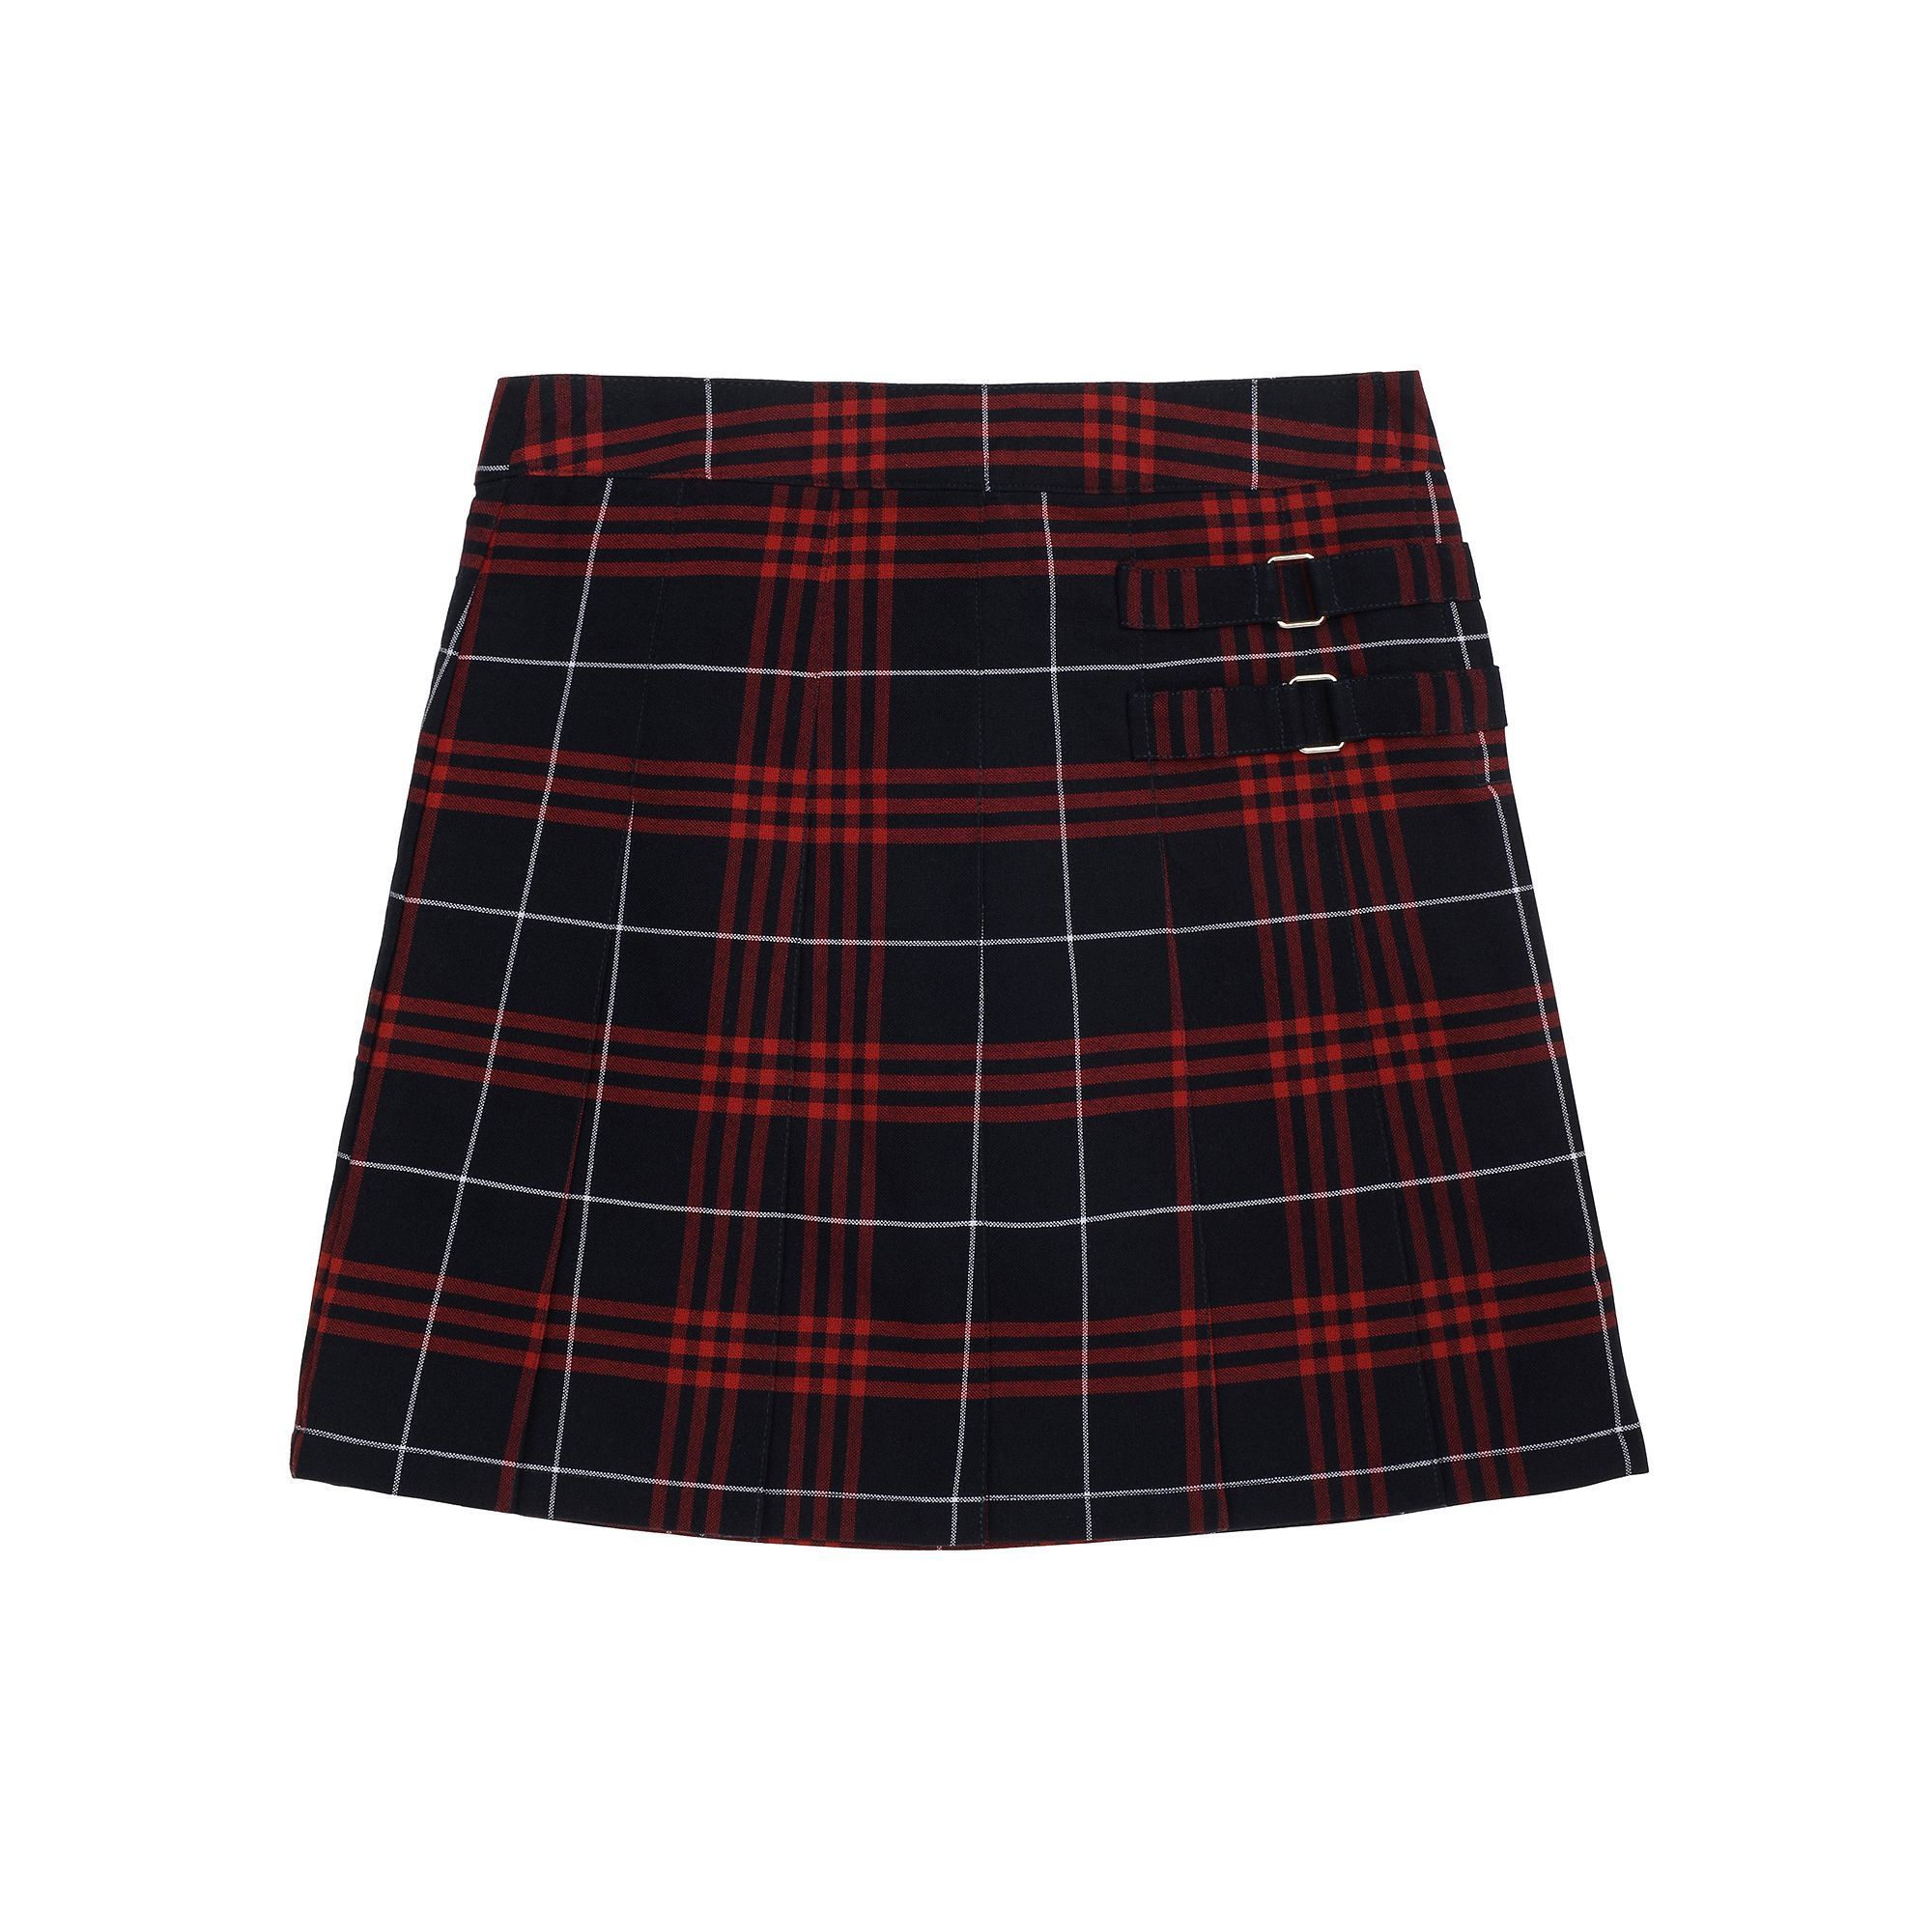 ed11c4e6f0 Girls 4-20 & Plus Size French Toast School Uniform Pleated Plaid Skort,  Girl's, Size: 12, Blue Other